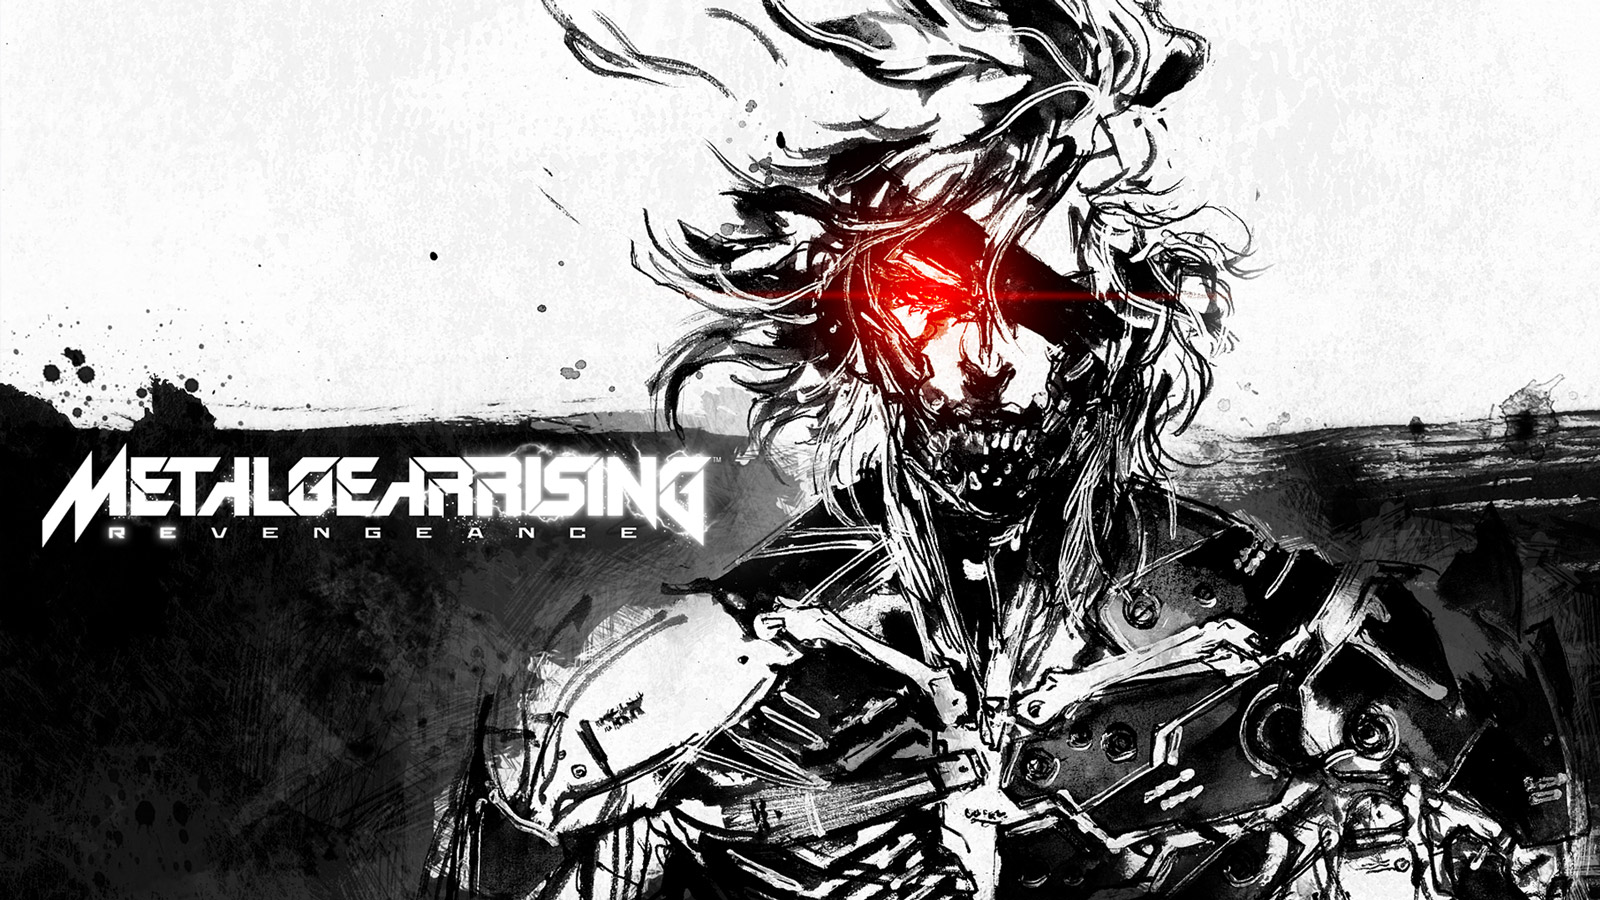 'Metal Gear Rising: Revengeance' Video Preview